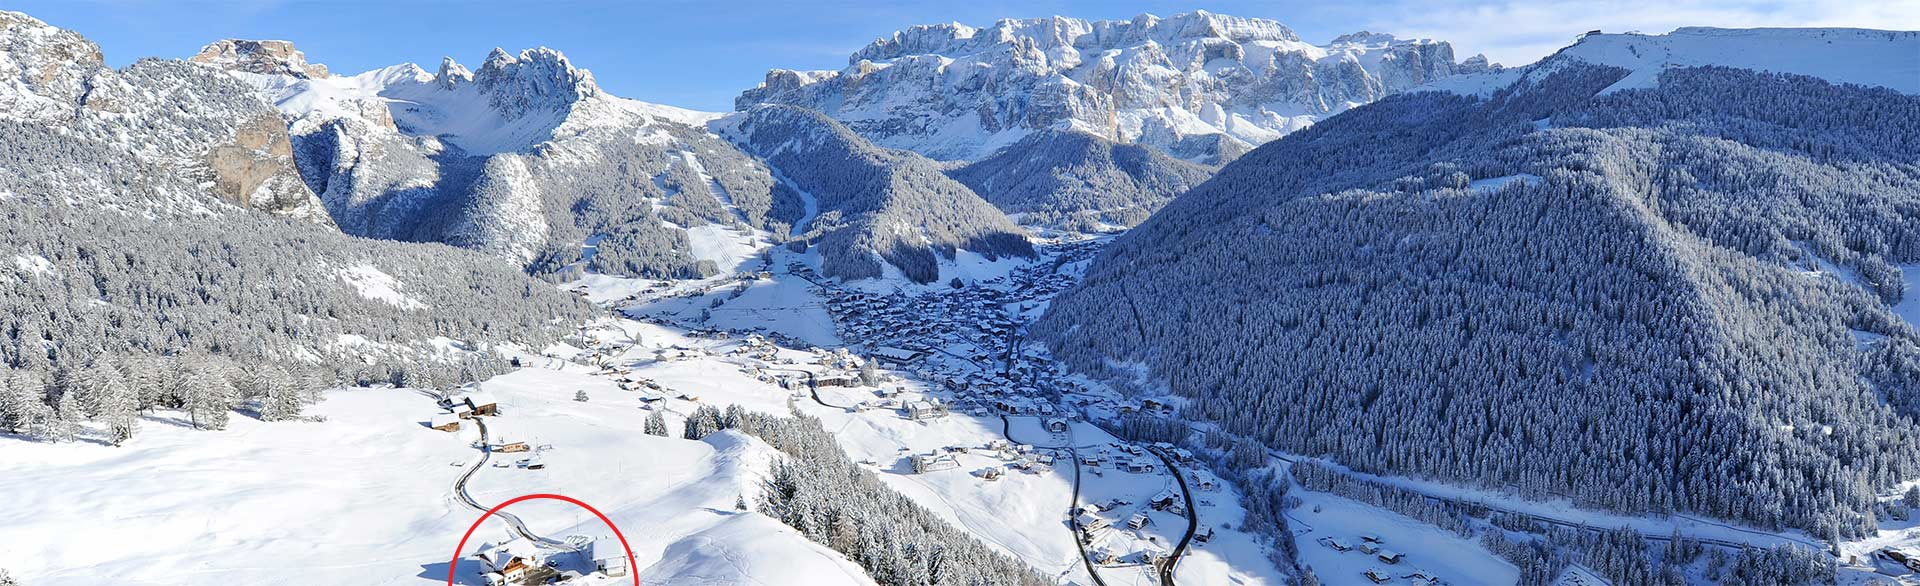 Location and how to reach us - Farm holidays Tulba in Selva in Val Gardena